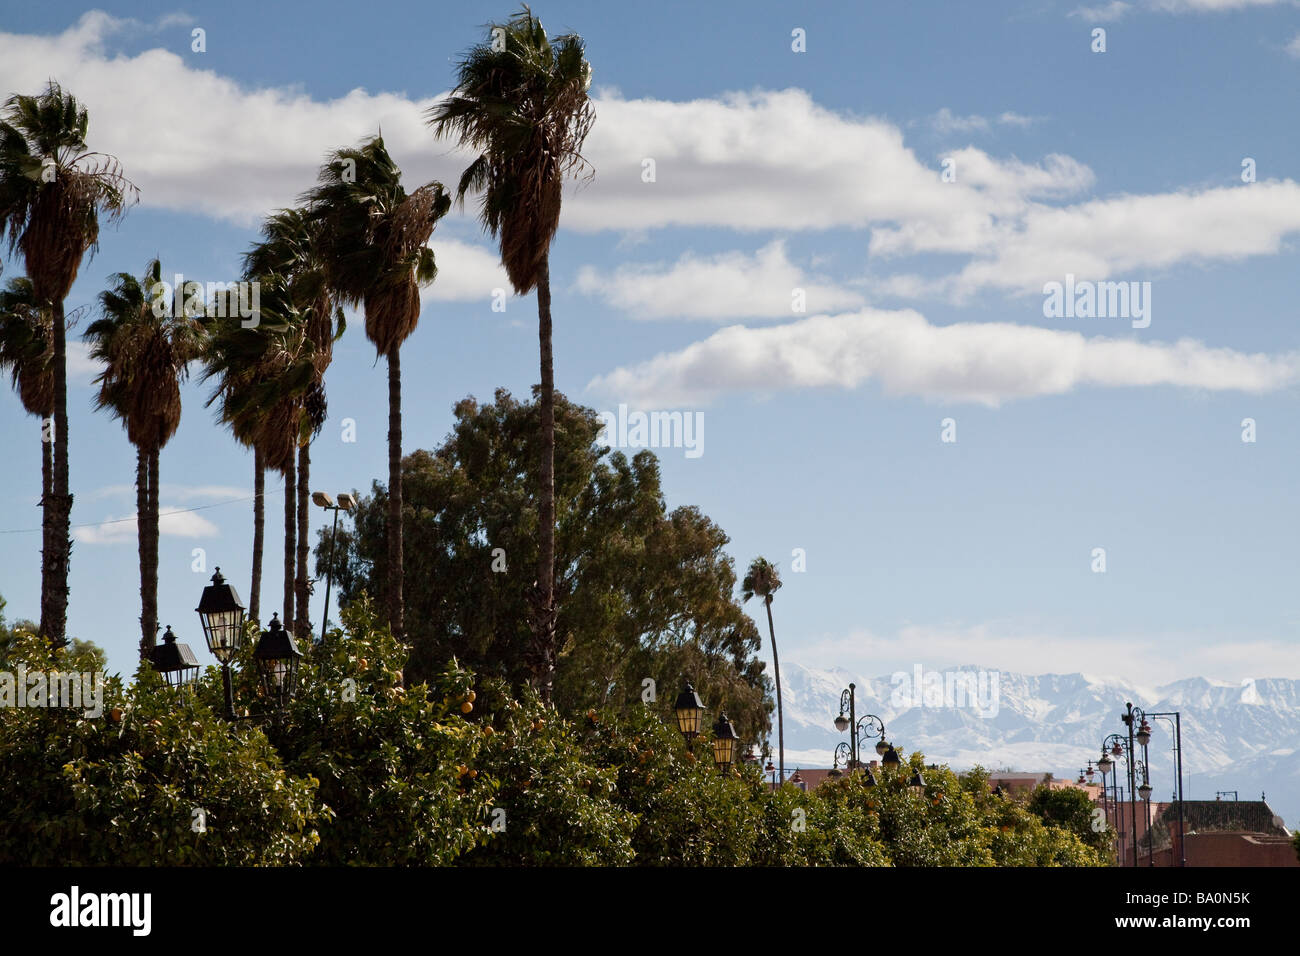 Palm trees with a view of the Atlas mountains in the background as seen from the Avenue Mohammed V in Marrakech - Stock Image